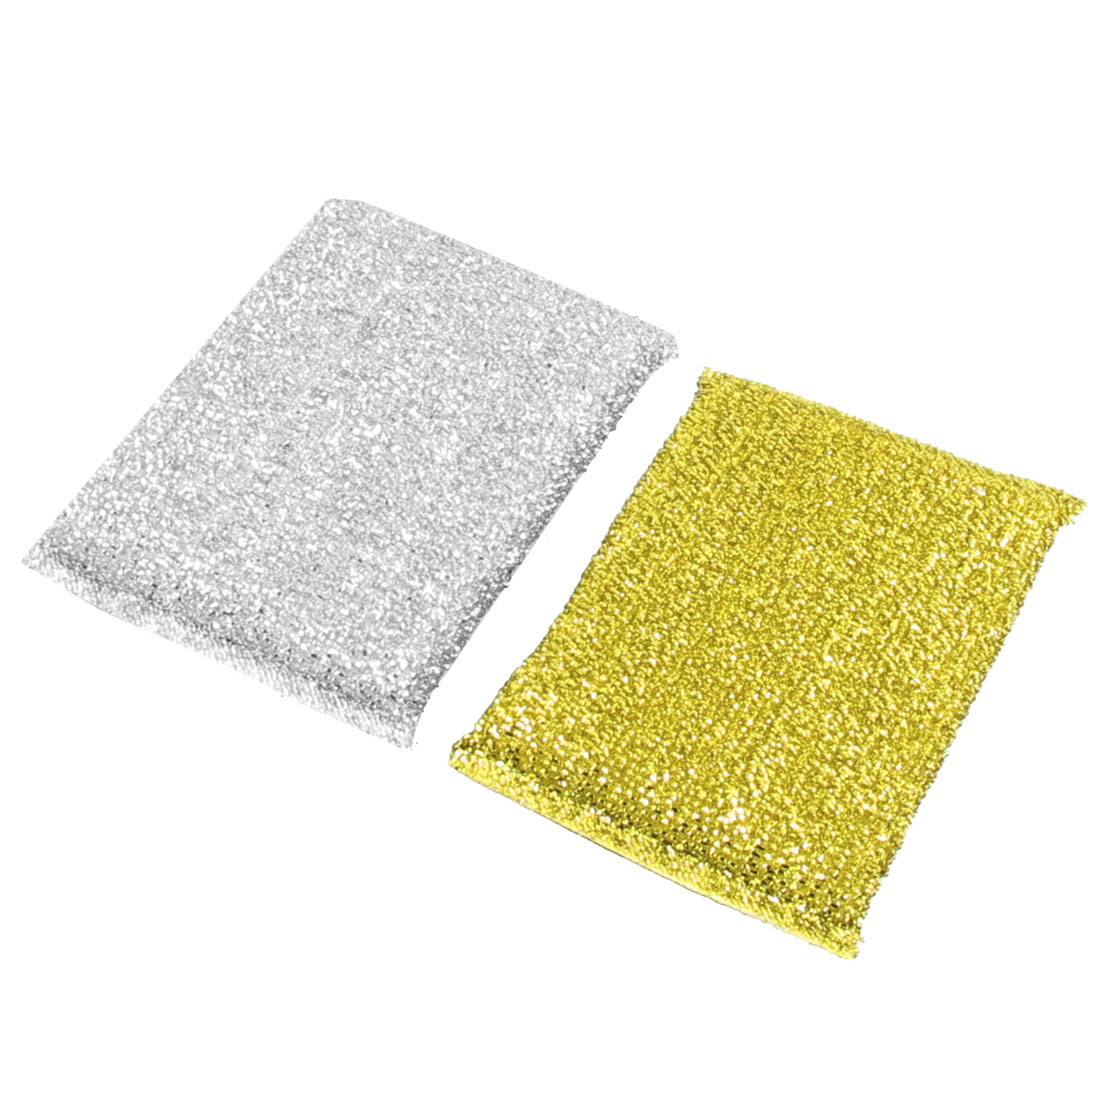 Silver Gold Tone Cotton Blends Dish Pot Cleaner Scrub Pads 2 Pcs